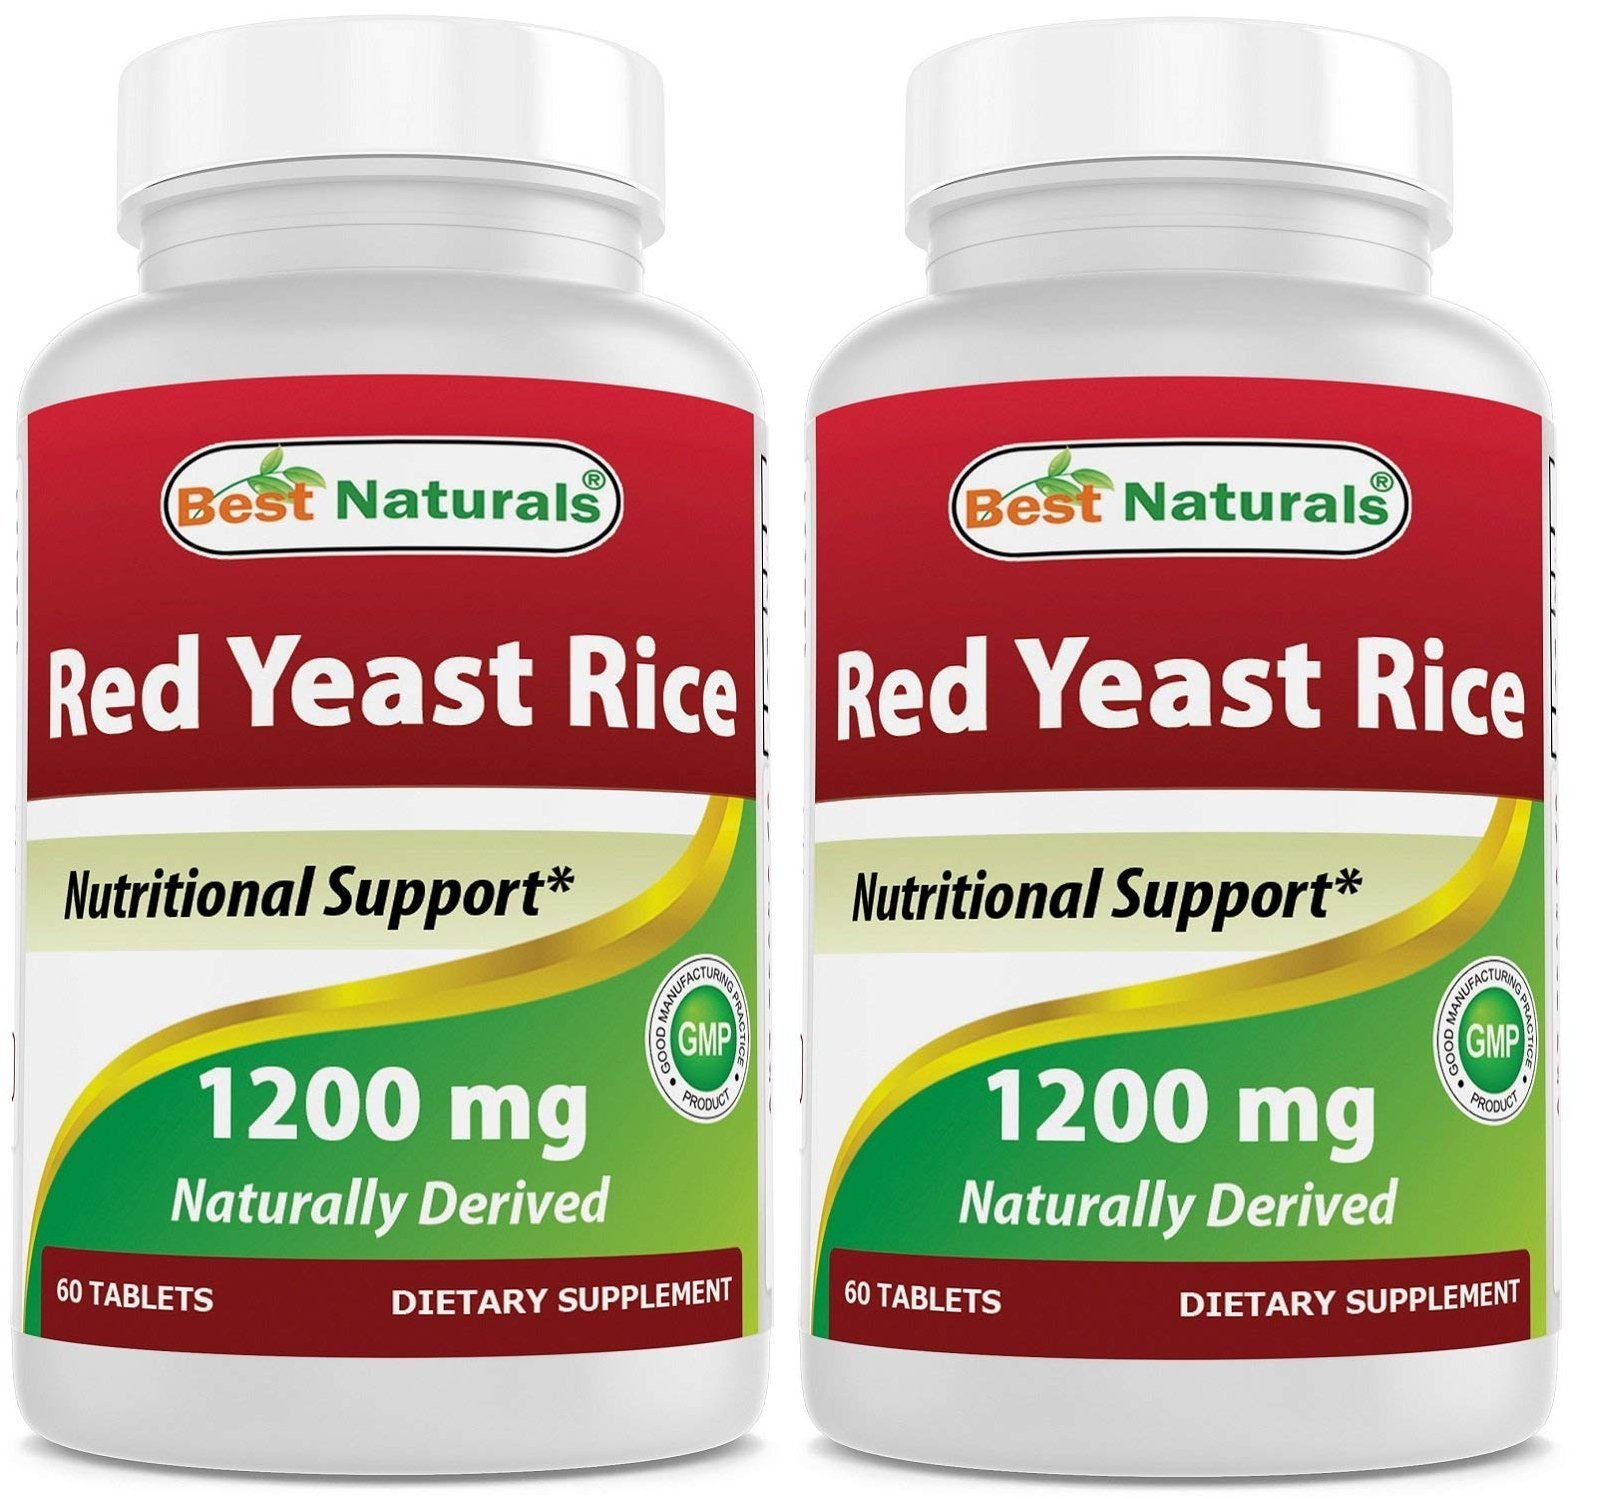 Best Naturals Red Yeast Rice 1200 Mg Tablet for Healthy Cholesterol Level, 60 Count (Pack of 2)